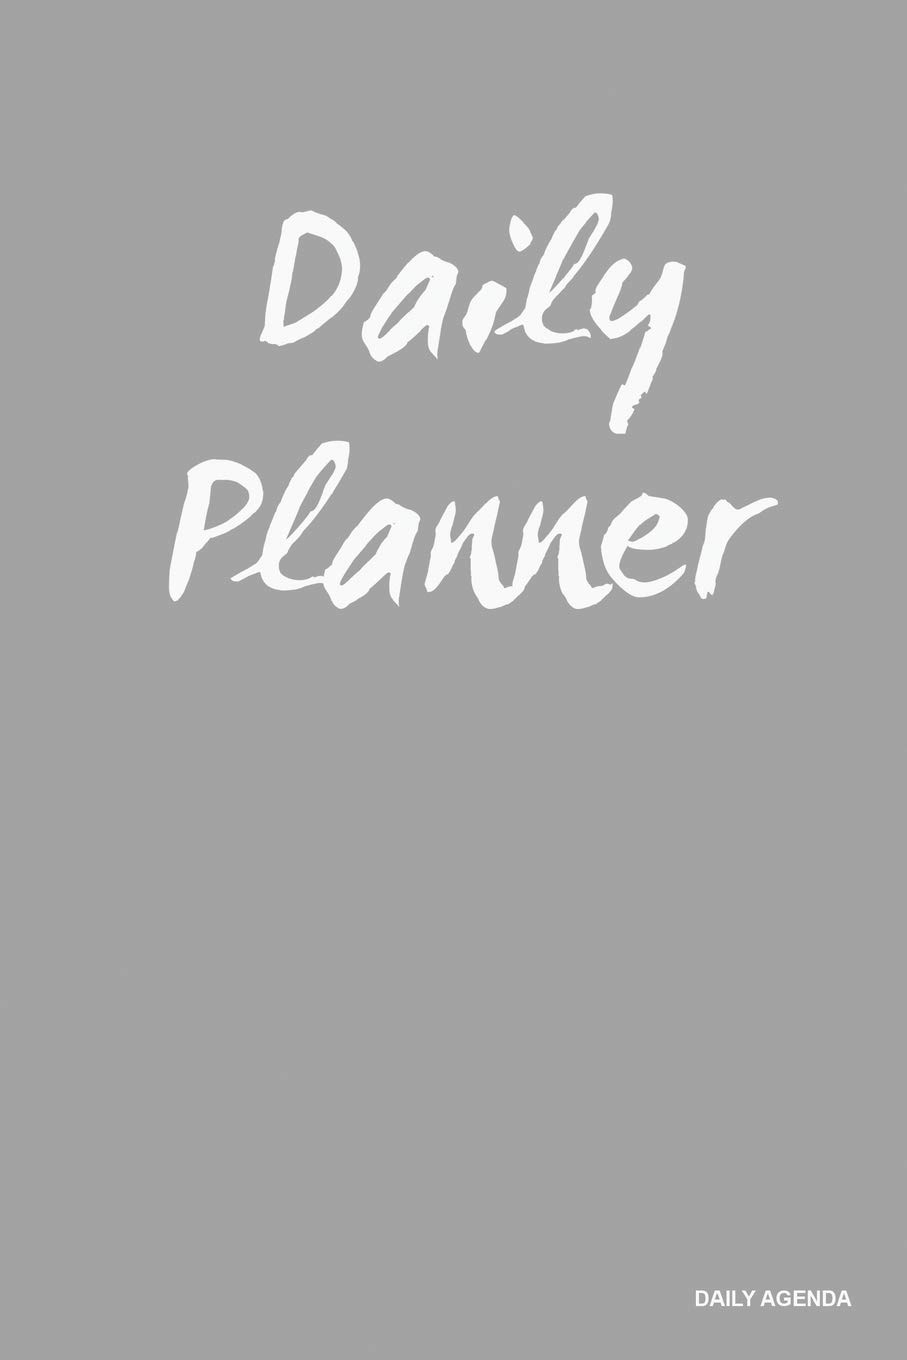 Daily Planner - Daily Agenda: Silver, Undated Planner, 90 ...